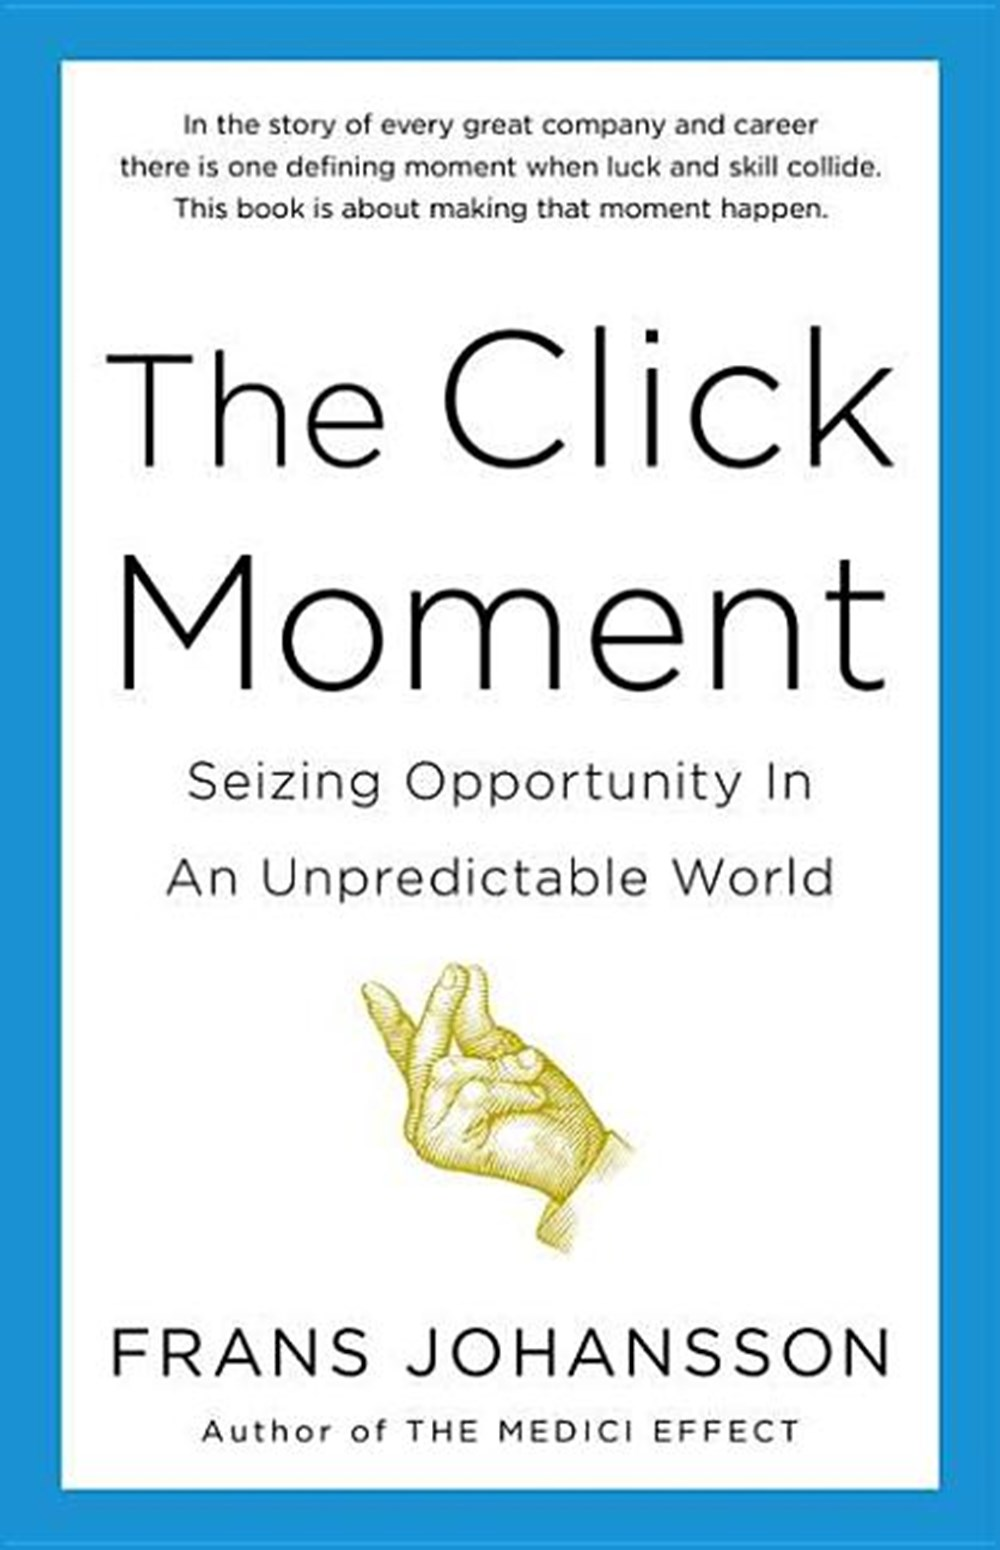 Click Moment Seizing Opportunity in an Unpredictable World